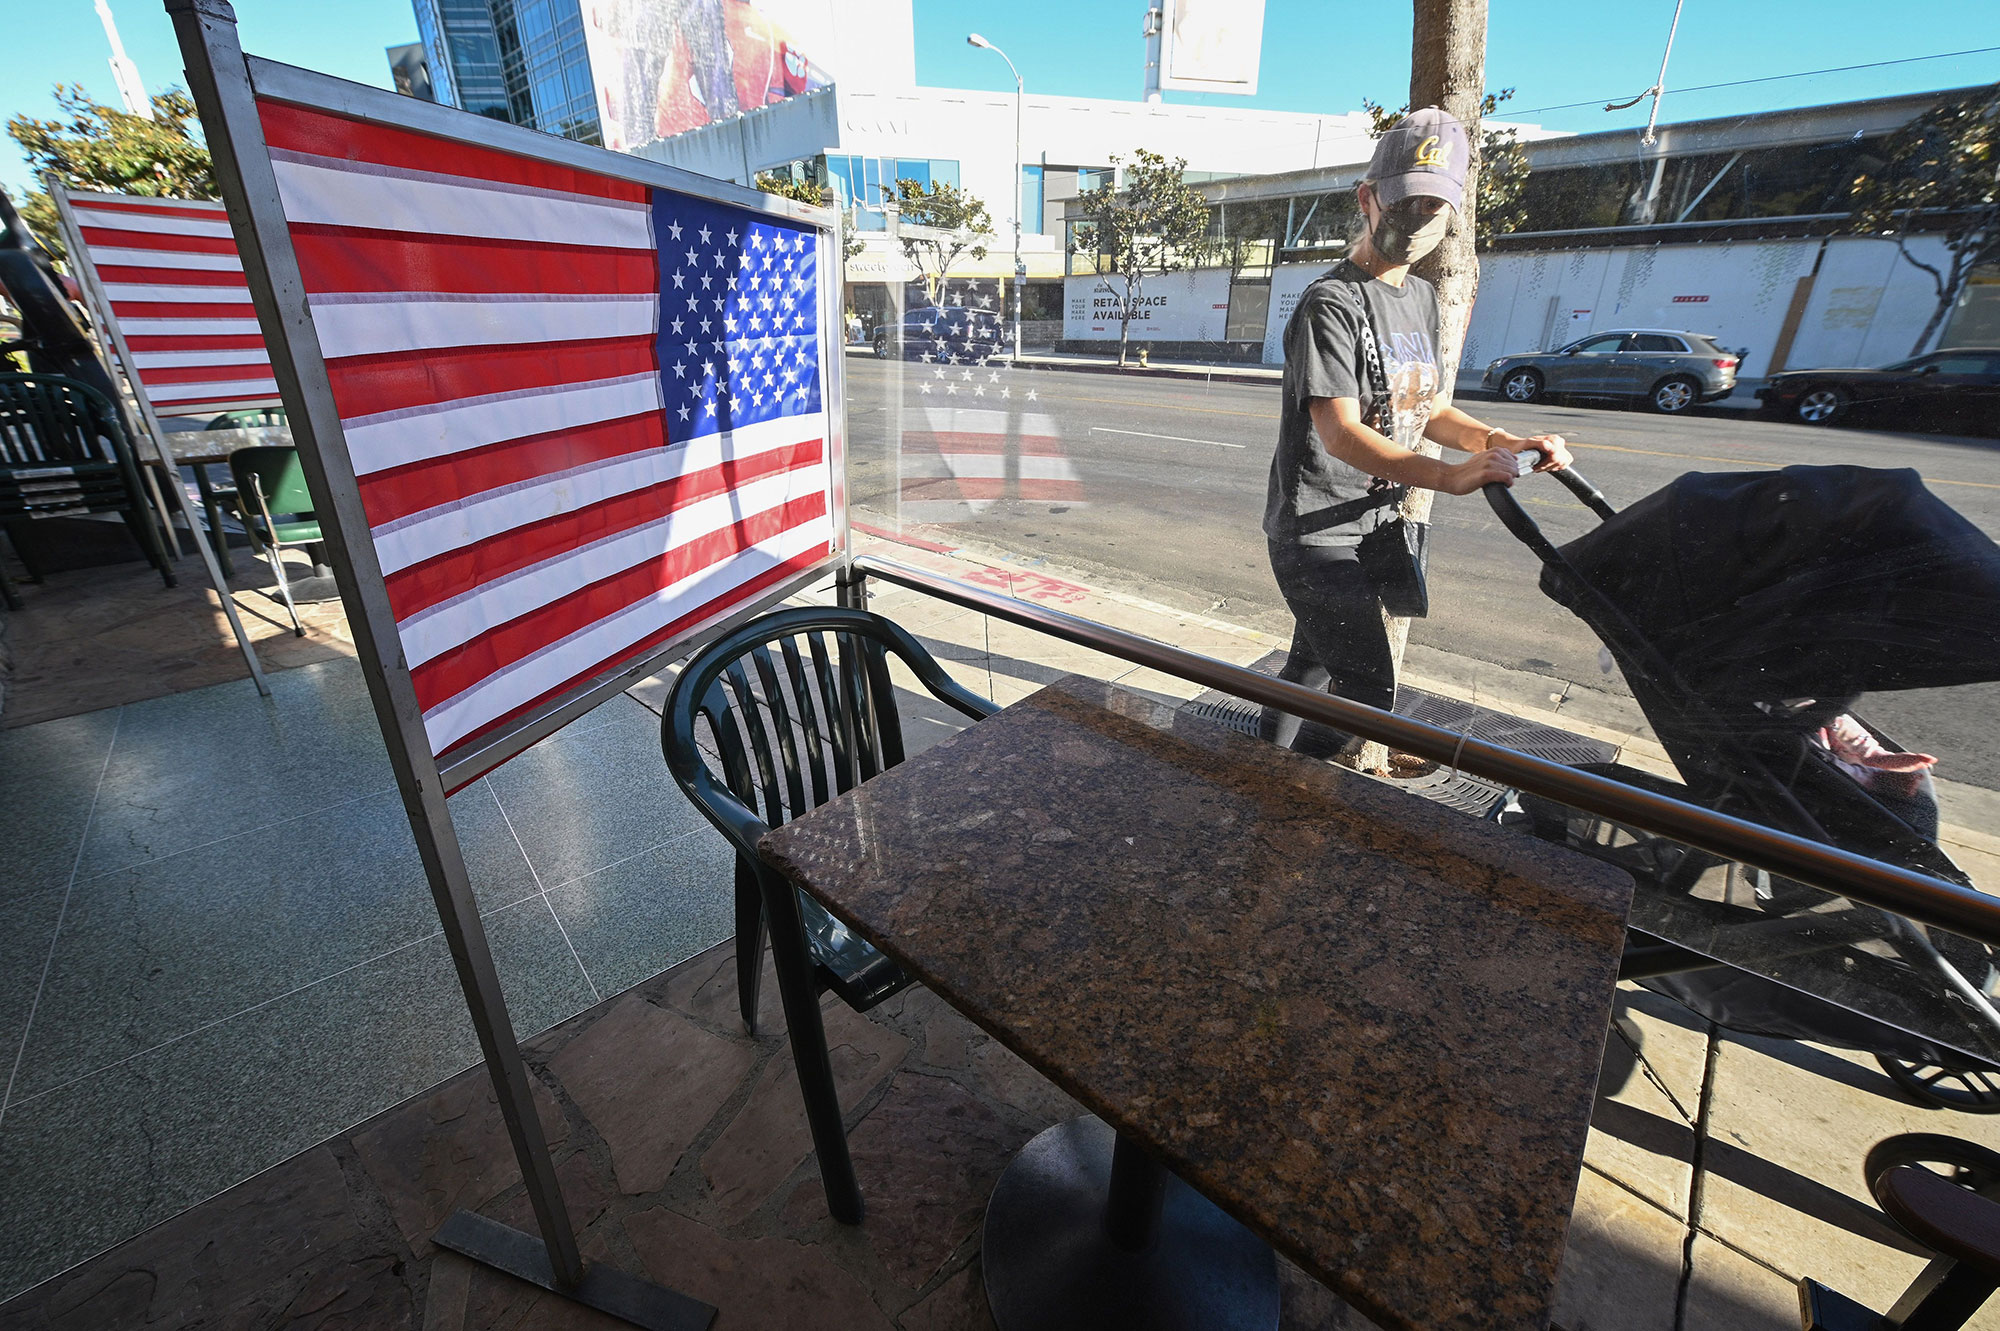 Tables are empty at a diner in West Hollywood, California, on November 30.